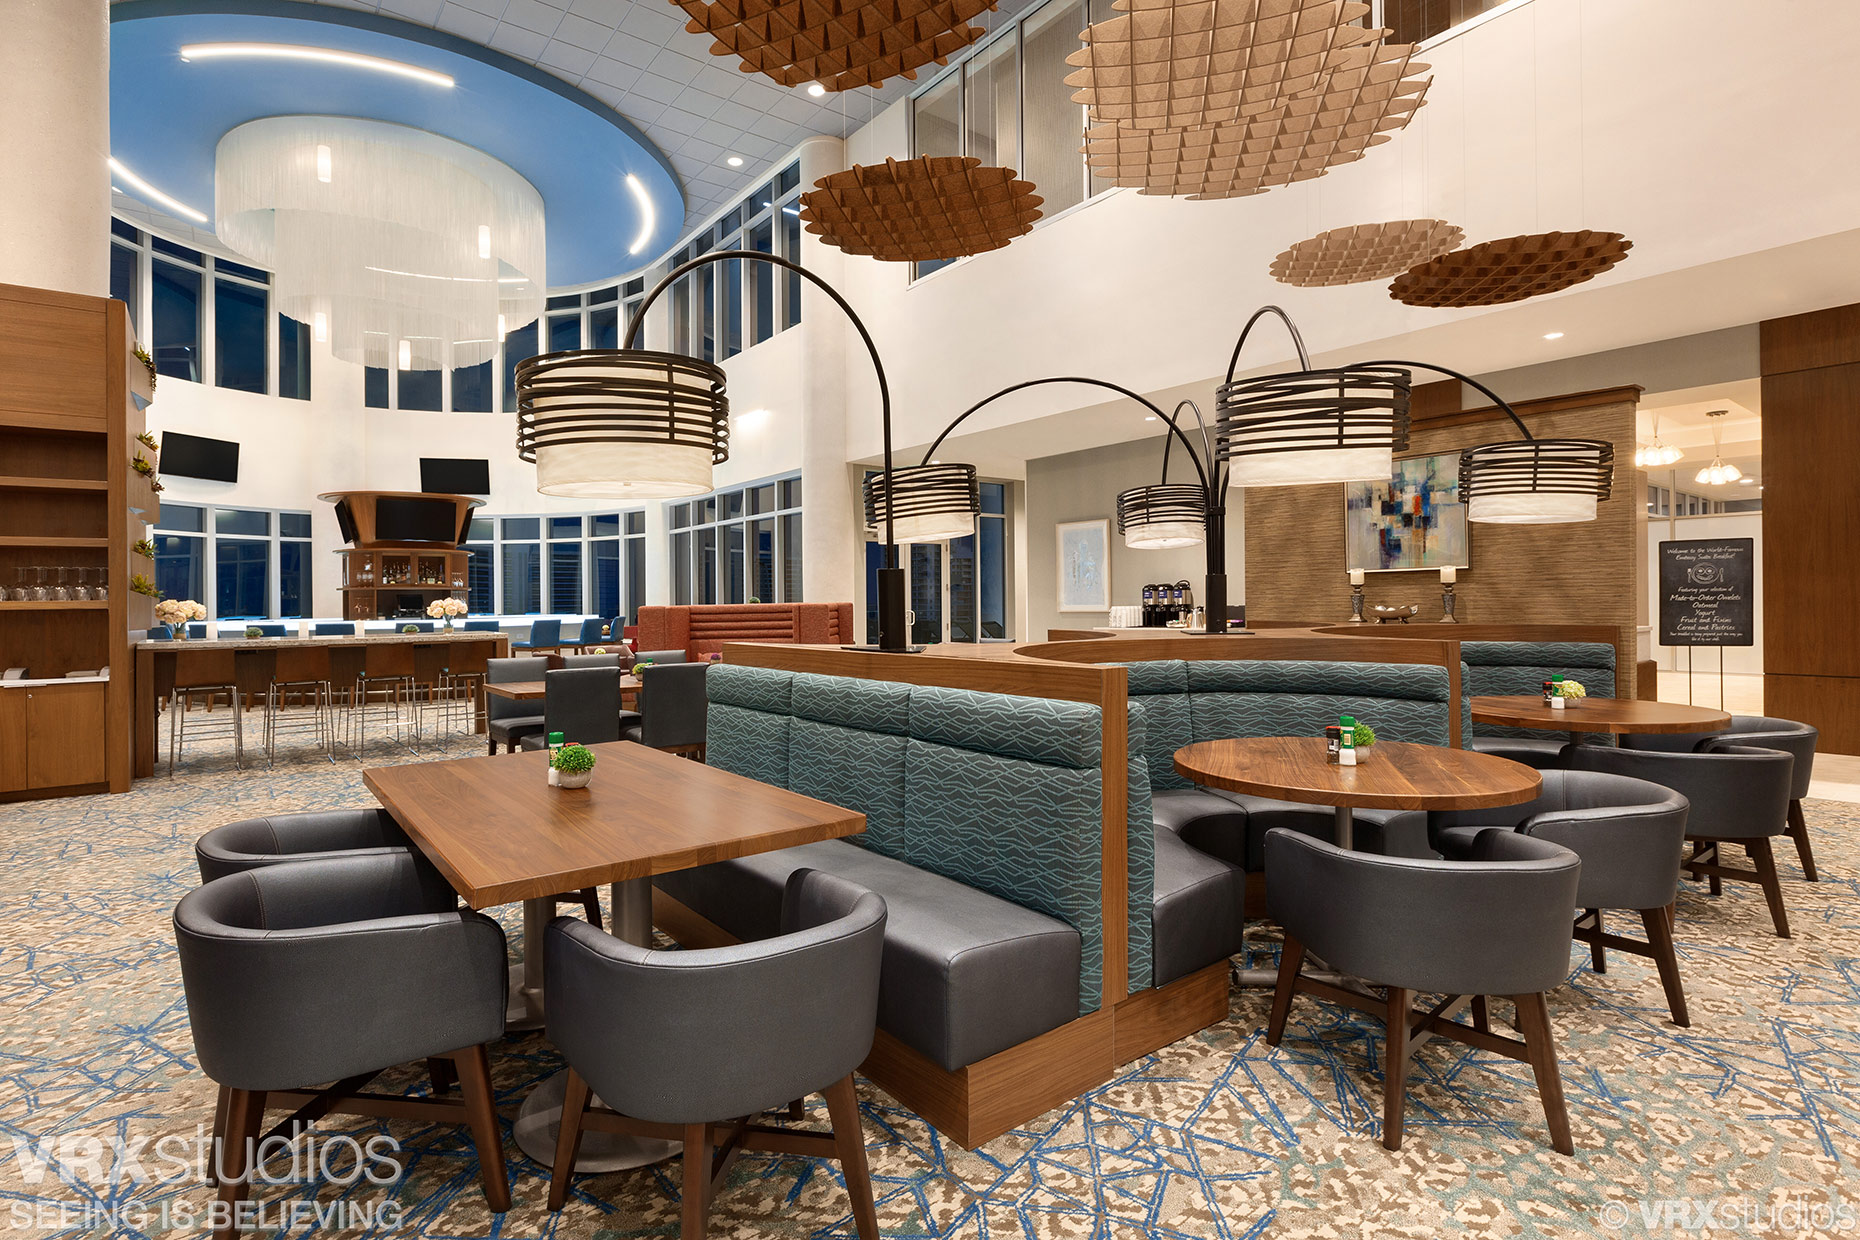 Houston Texas Architectural Photographer - Spacious dining area of the Bridges Restaurant located inside the Embassy Suites Hotel Sarasota FL